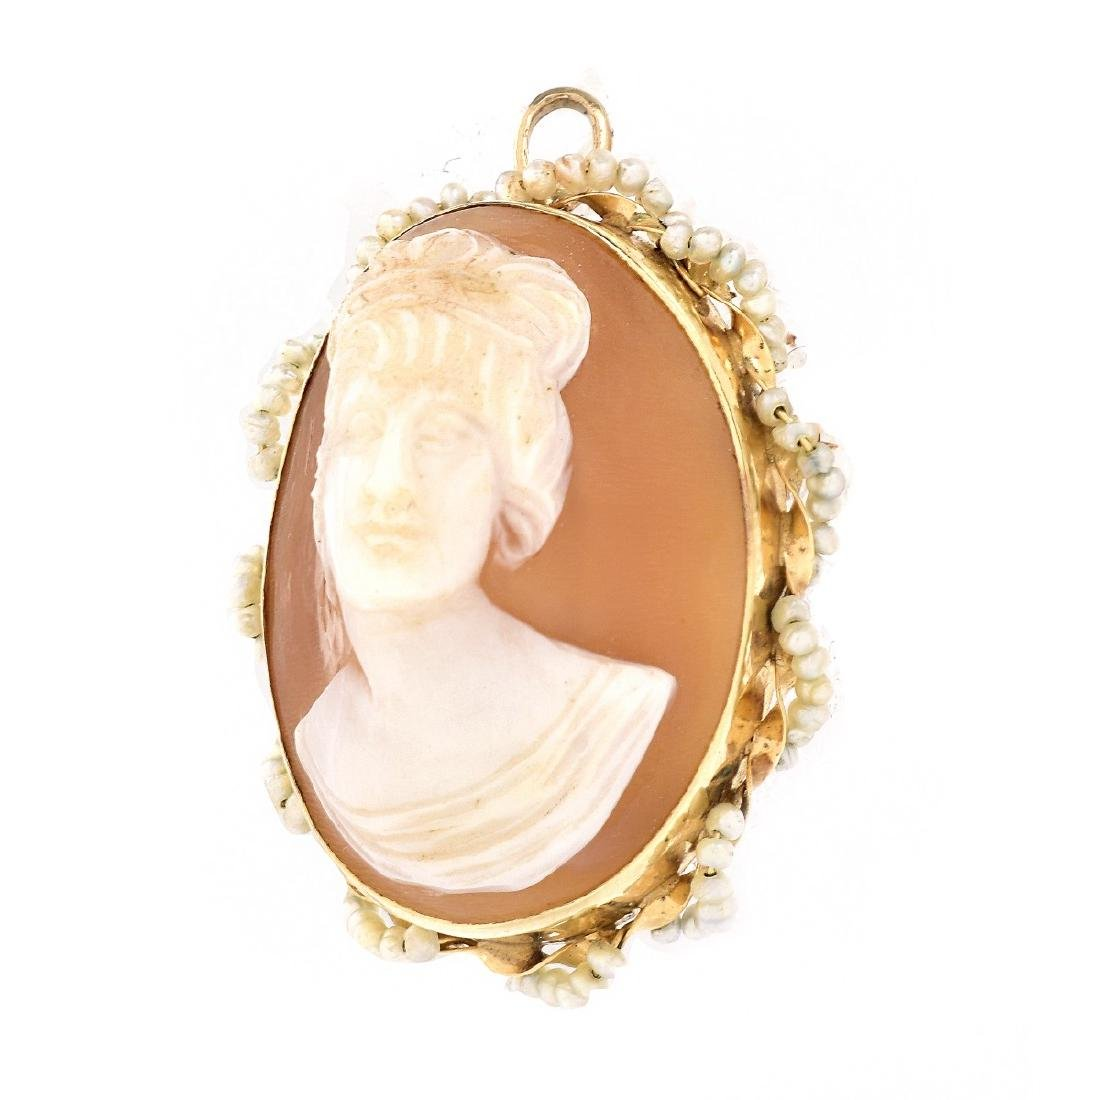 14K Gold and Seed Pearl Cameo Pendant Brooch - 2